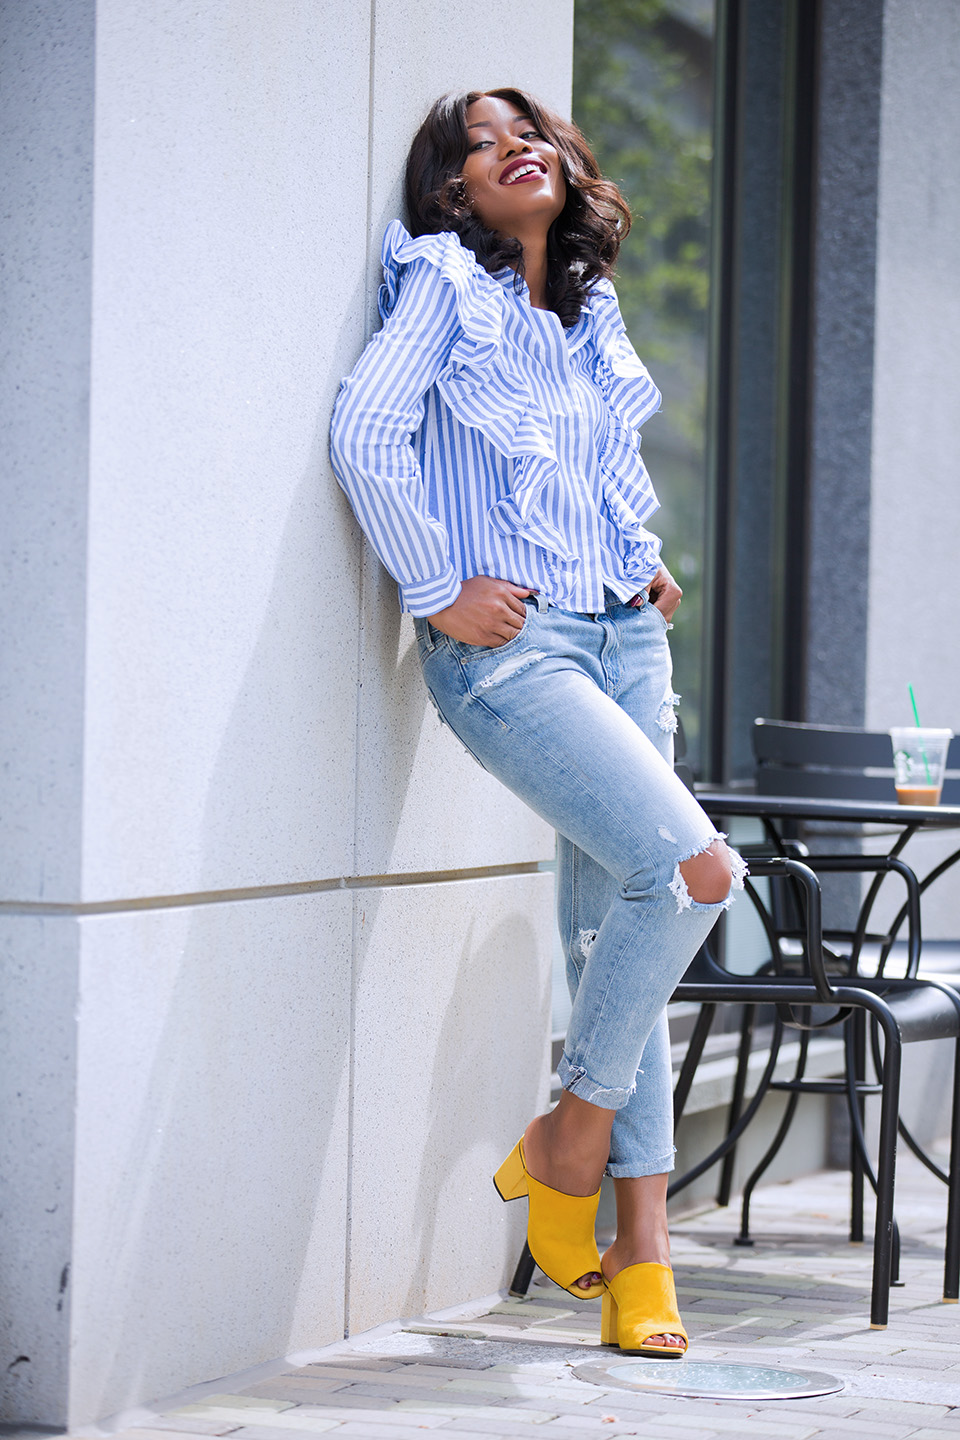 Ruffle blouse, express girlfriend jeans, topshop mules, www.jadore-fashion.com